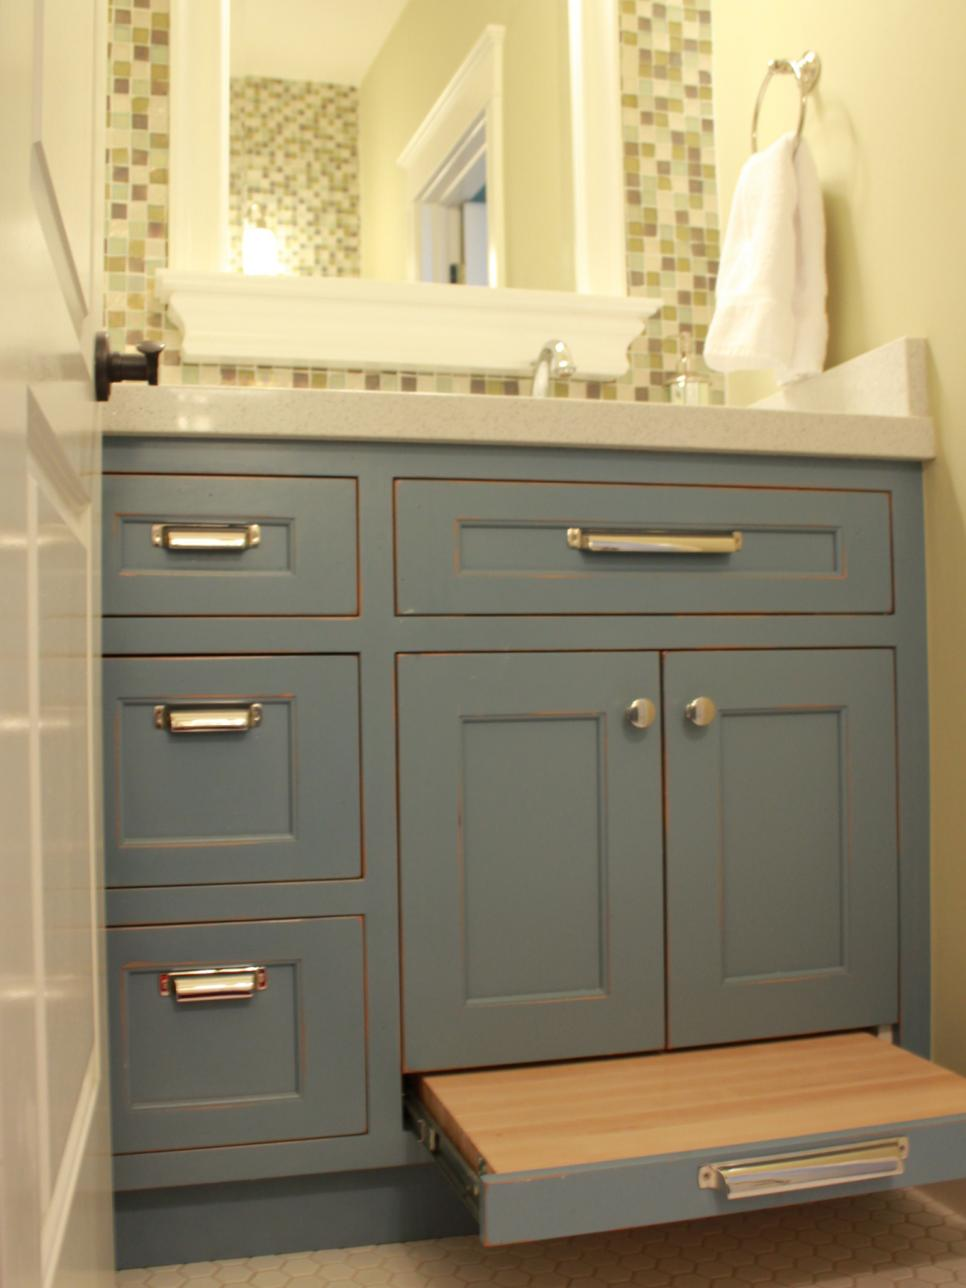 Double Bathroom Vanity Ideas 18 savvy bathroom vanity storage ideas | hgtv